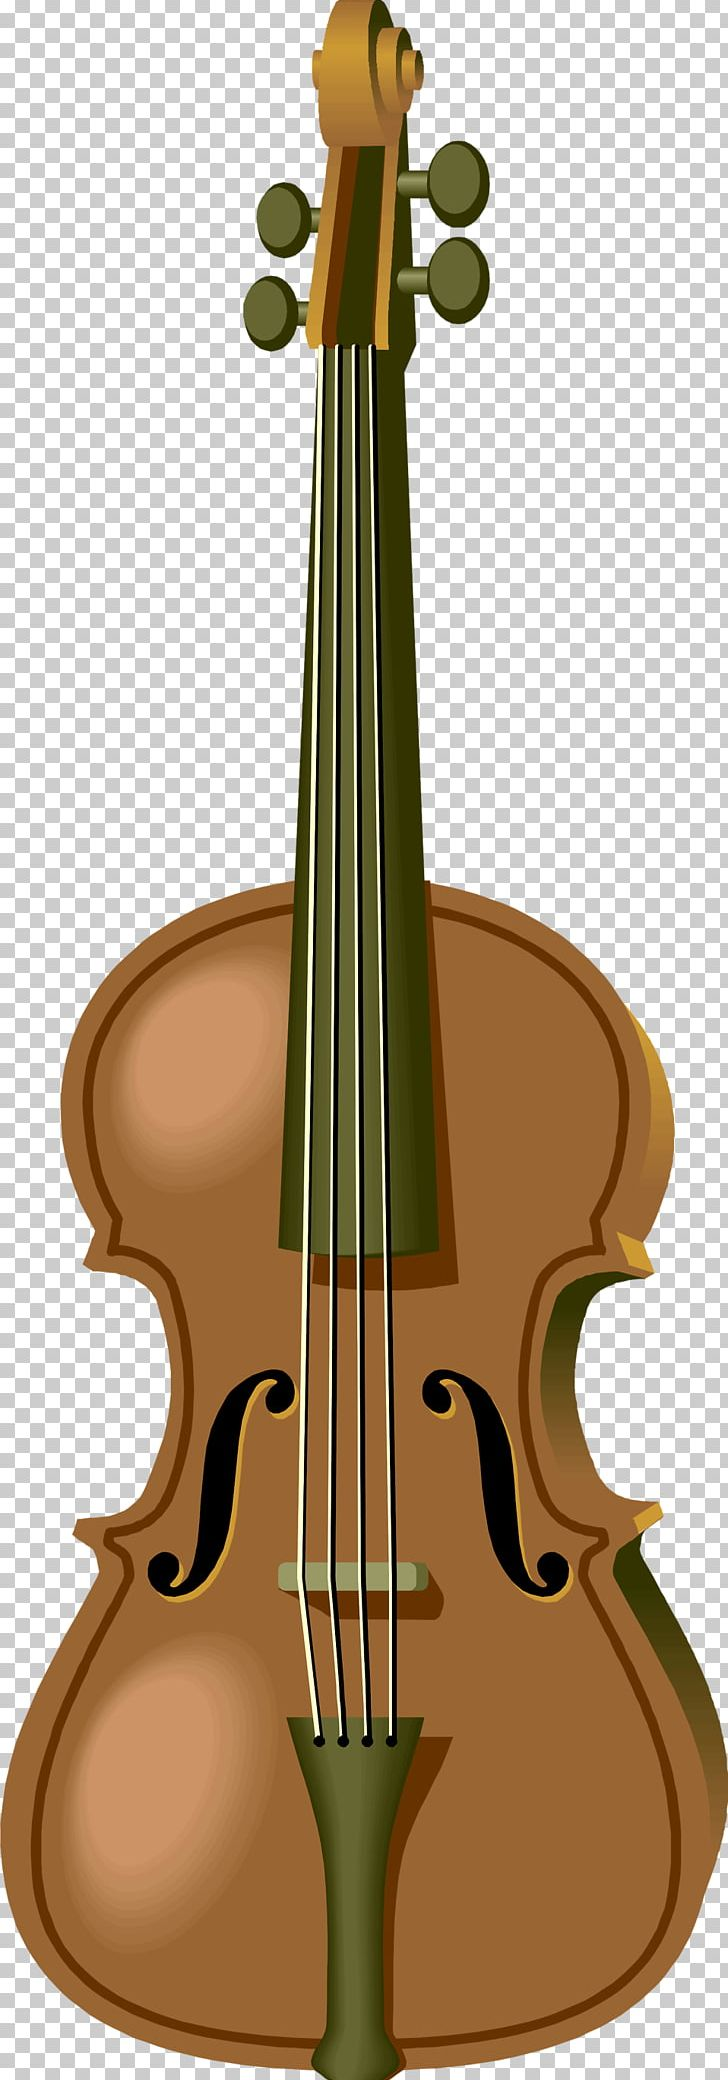 Cello Violin Musical Instruments PNG, Clipart, Bass Violin, Bow, Bowed String Instrument, Cello, Double Bass Free PNG Download